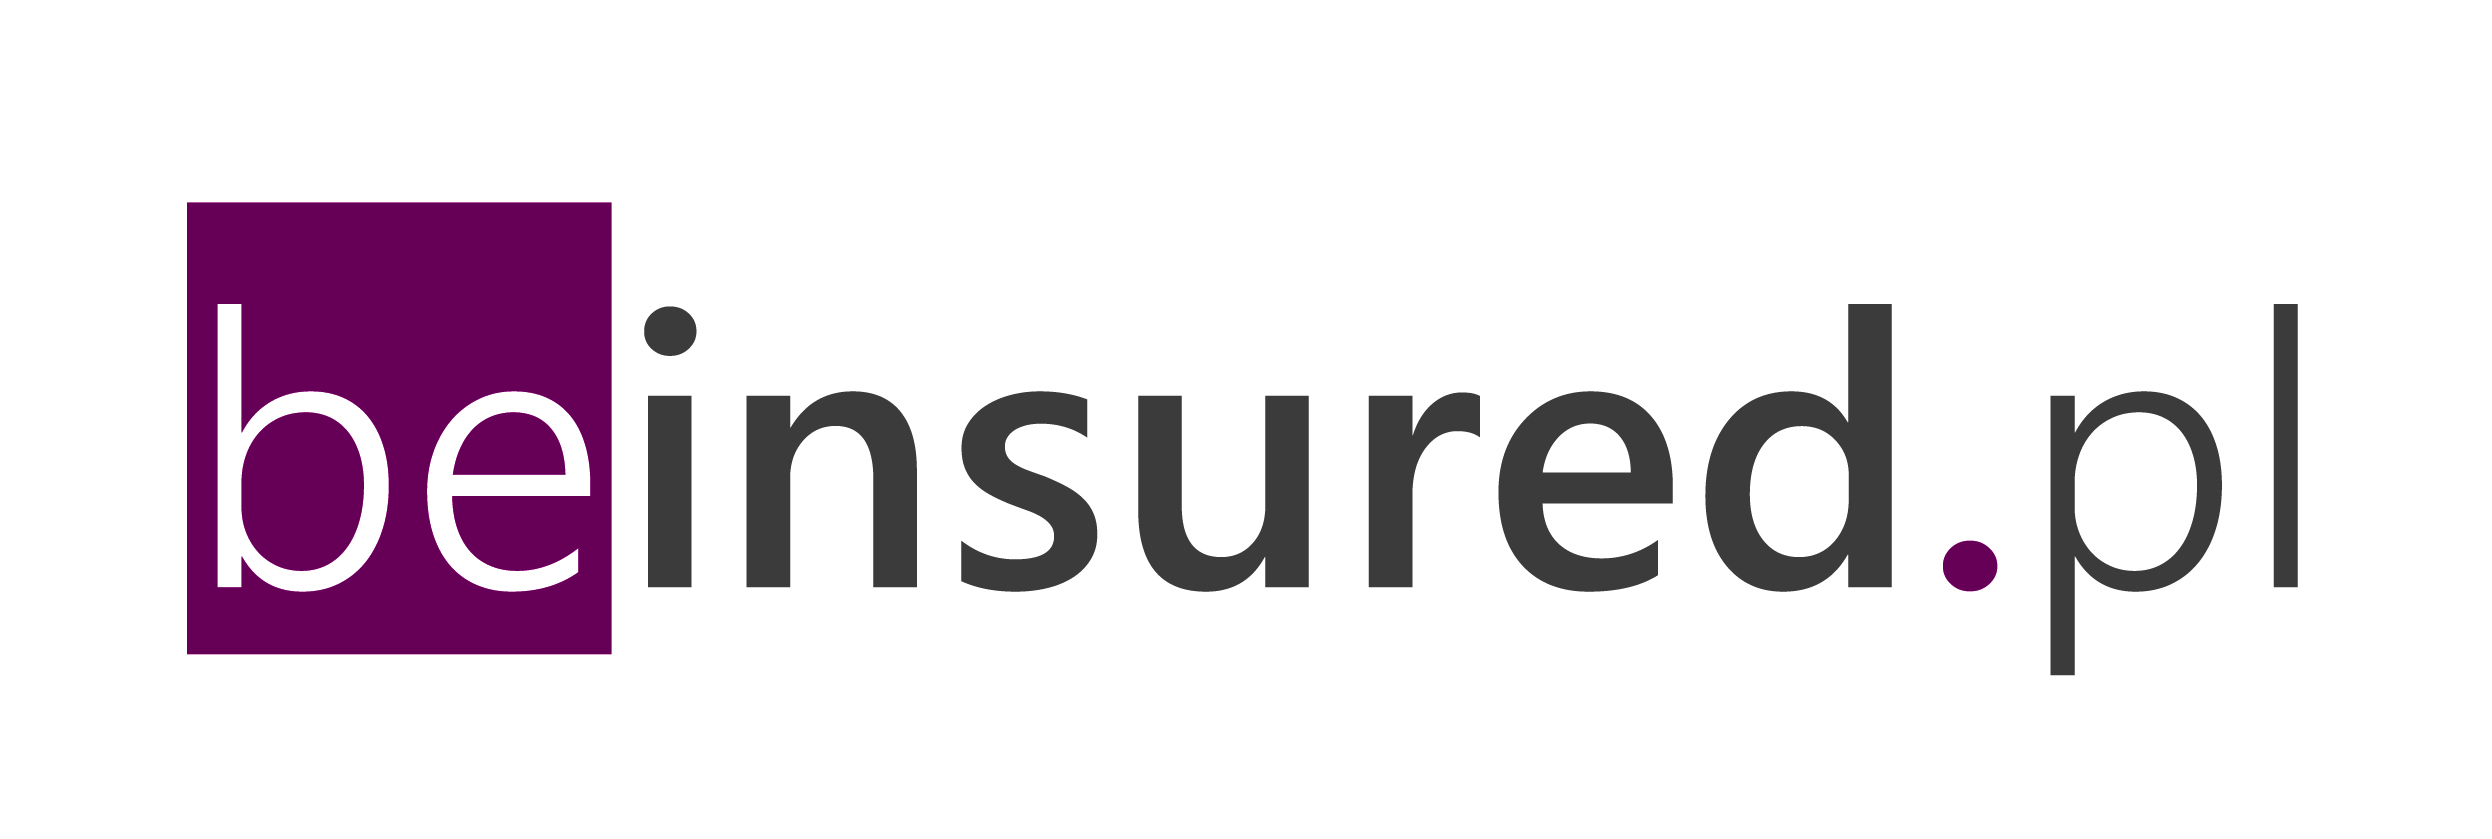 Beinsured